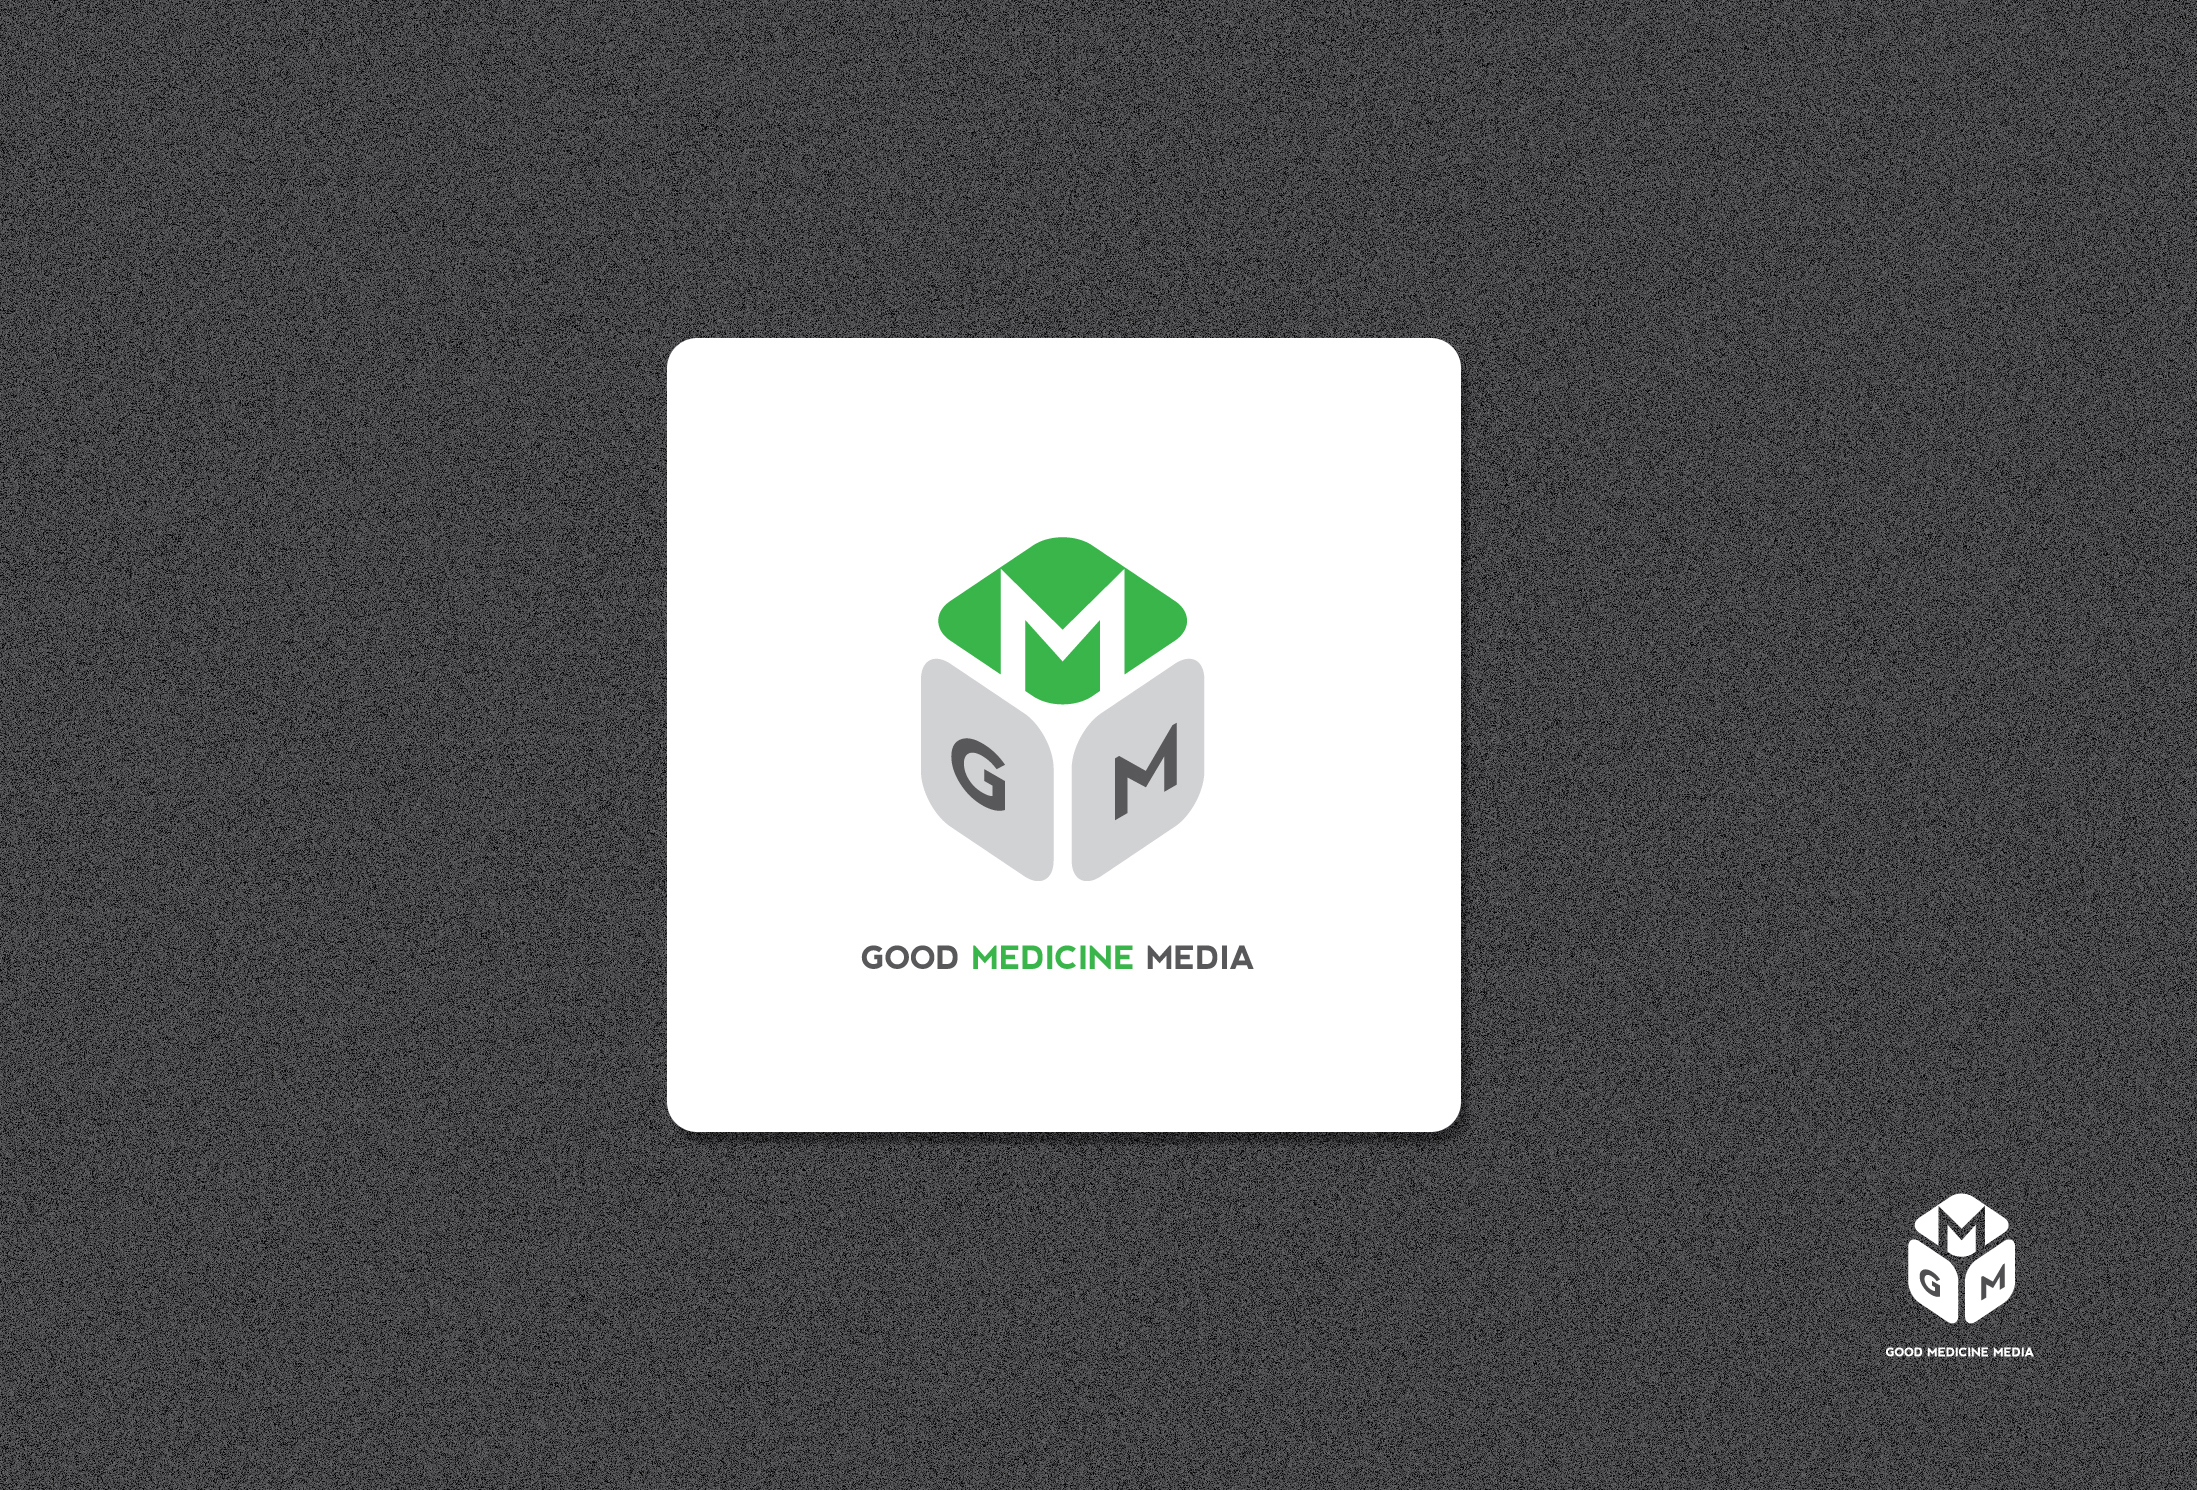 Logo Design by Shameer Okay - Entry No. 156 in the Logo Design Contest Good Medicine Media Logo Design.